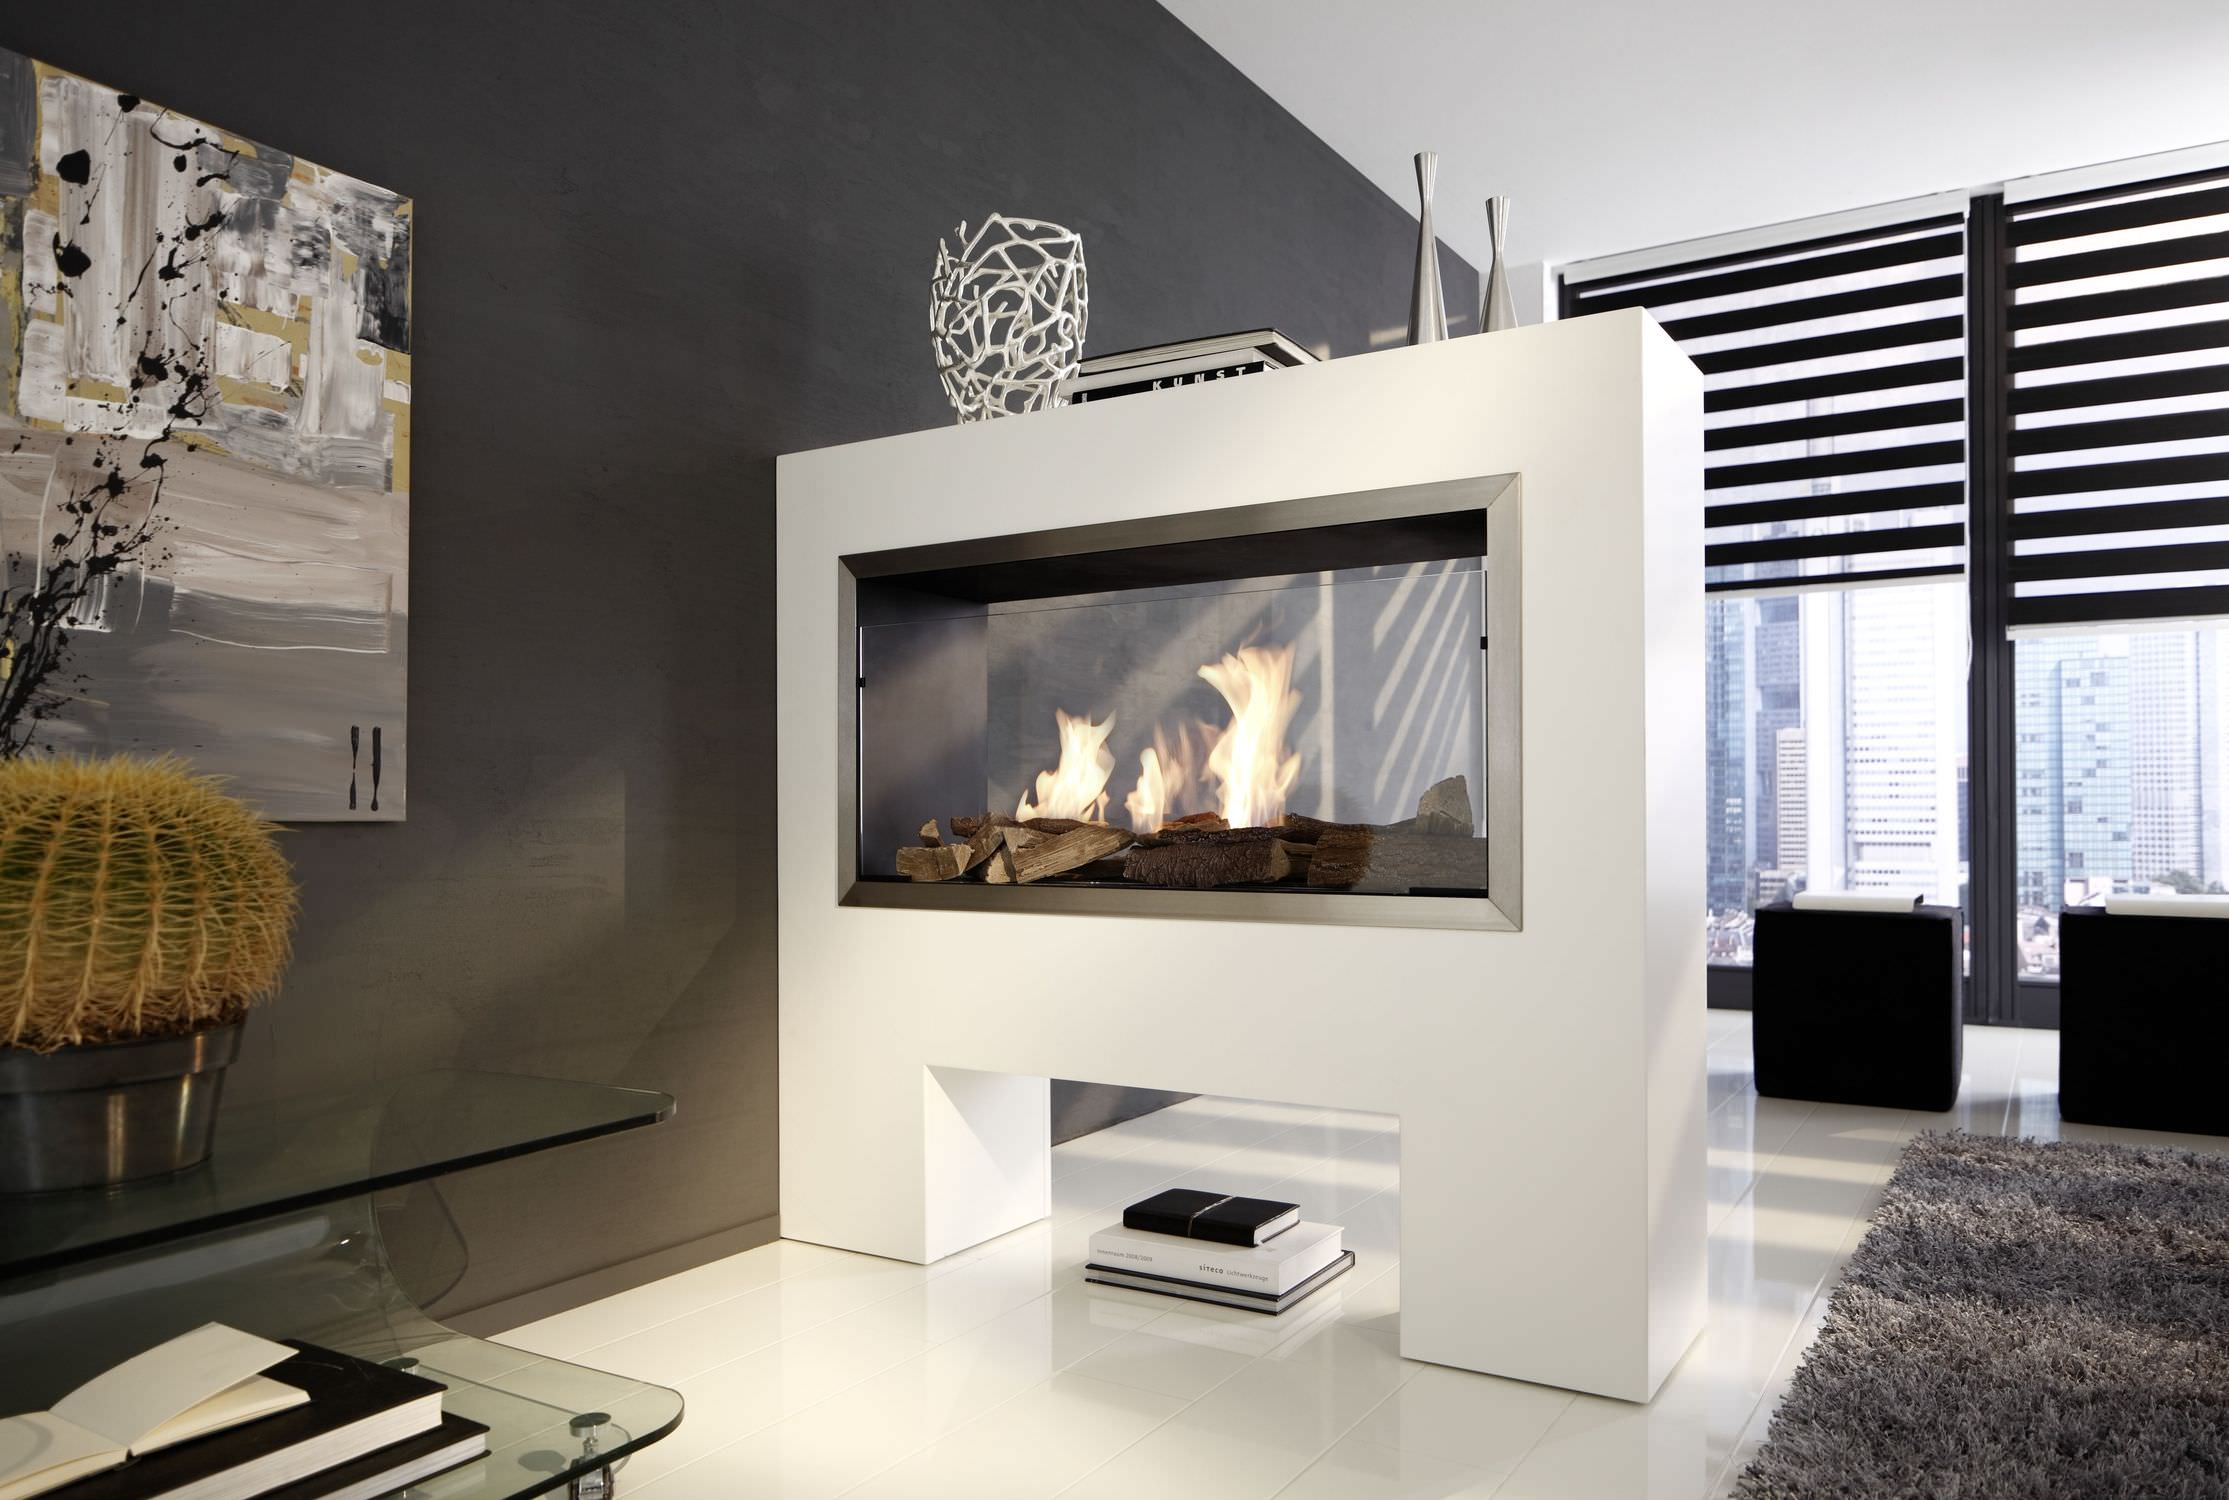 Make Your Home Elegant With A 2 Sided Fireplace